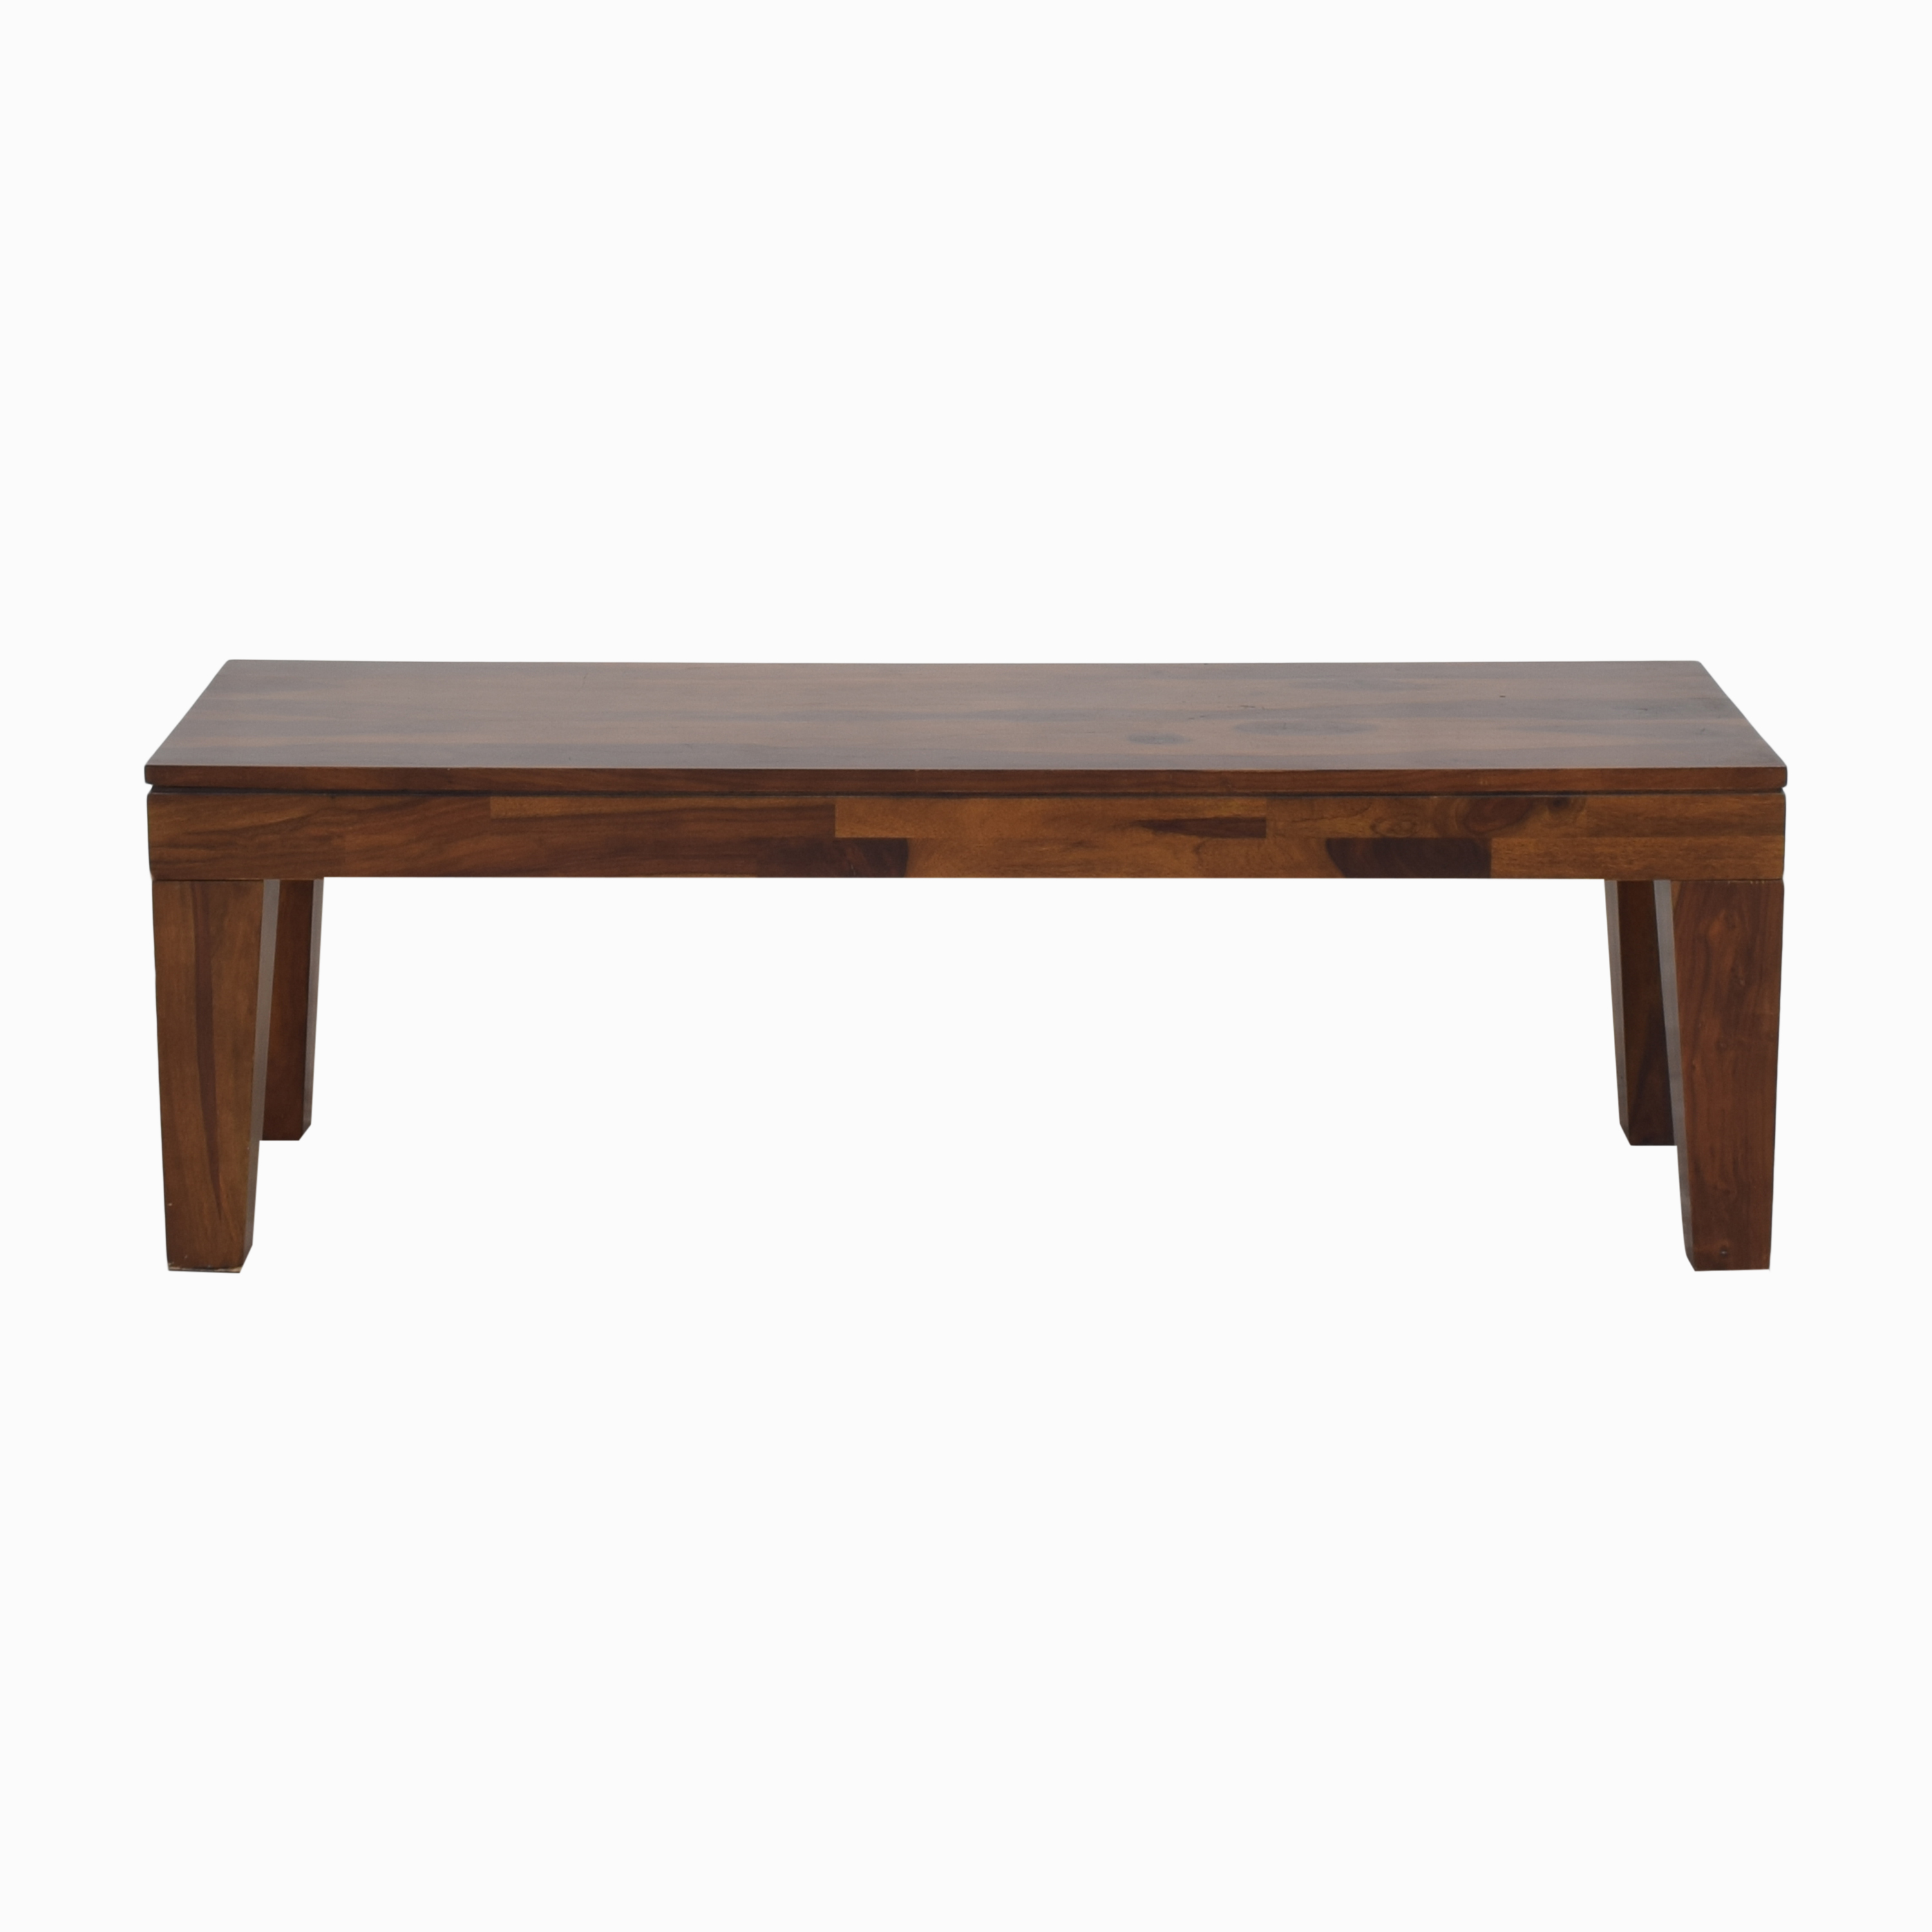 buy West Elm Carroll Farm Bench West Elm Benches